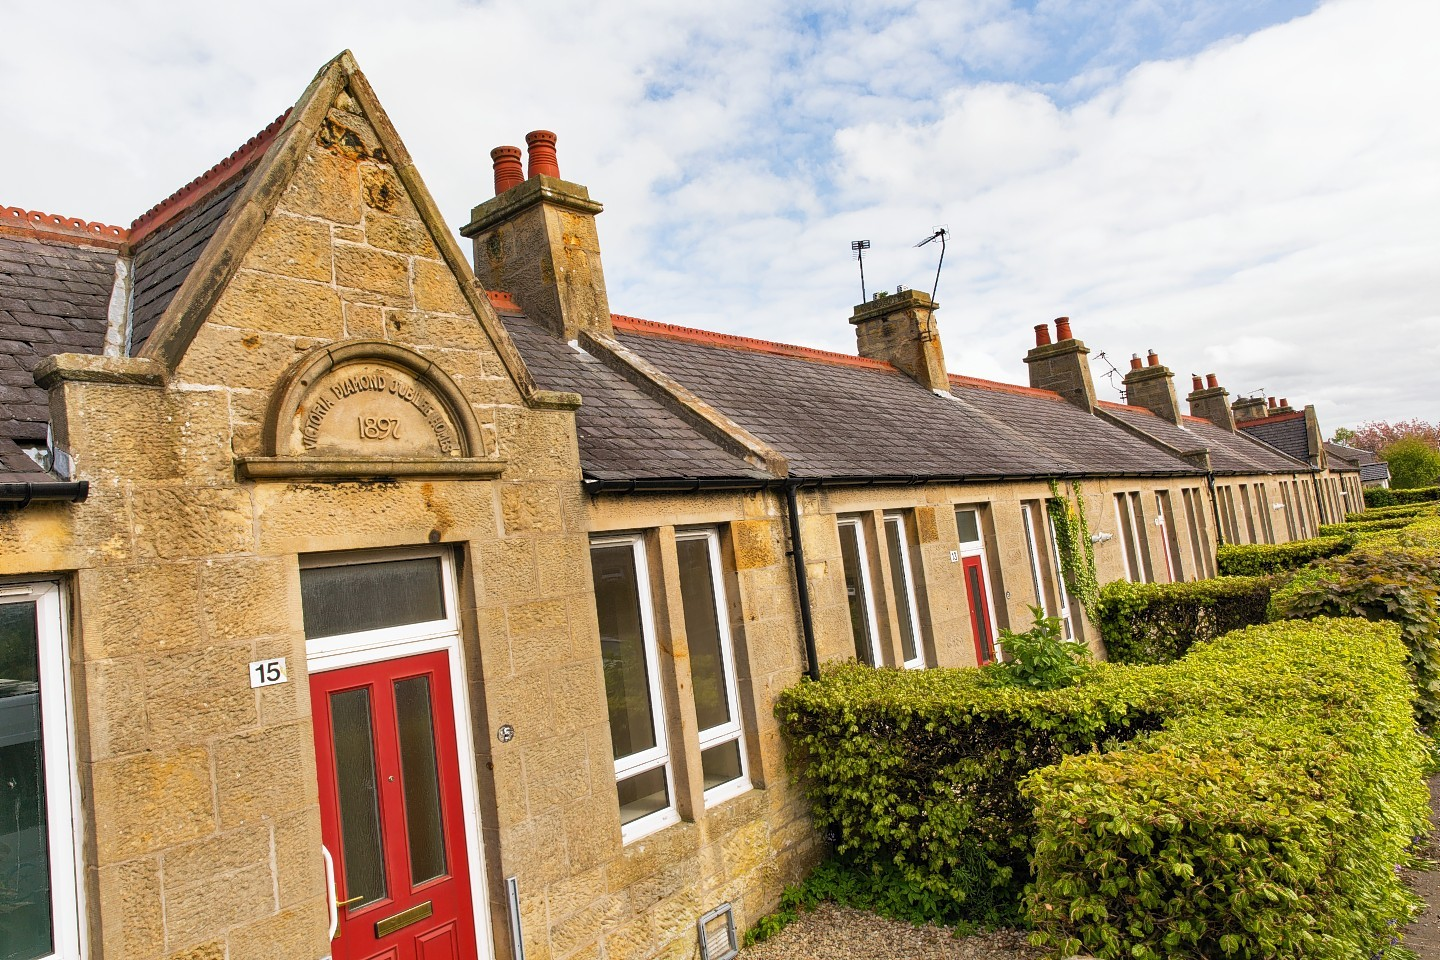 Jubilee Cottages on Victoria Road